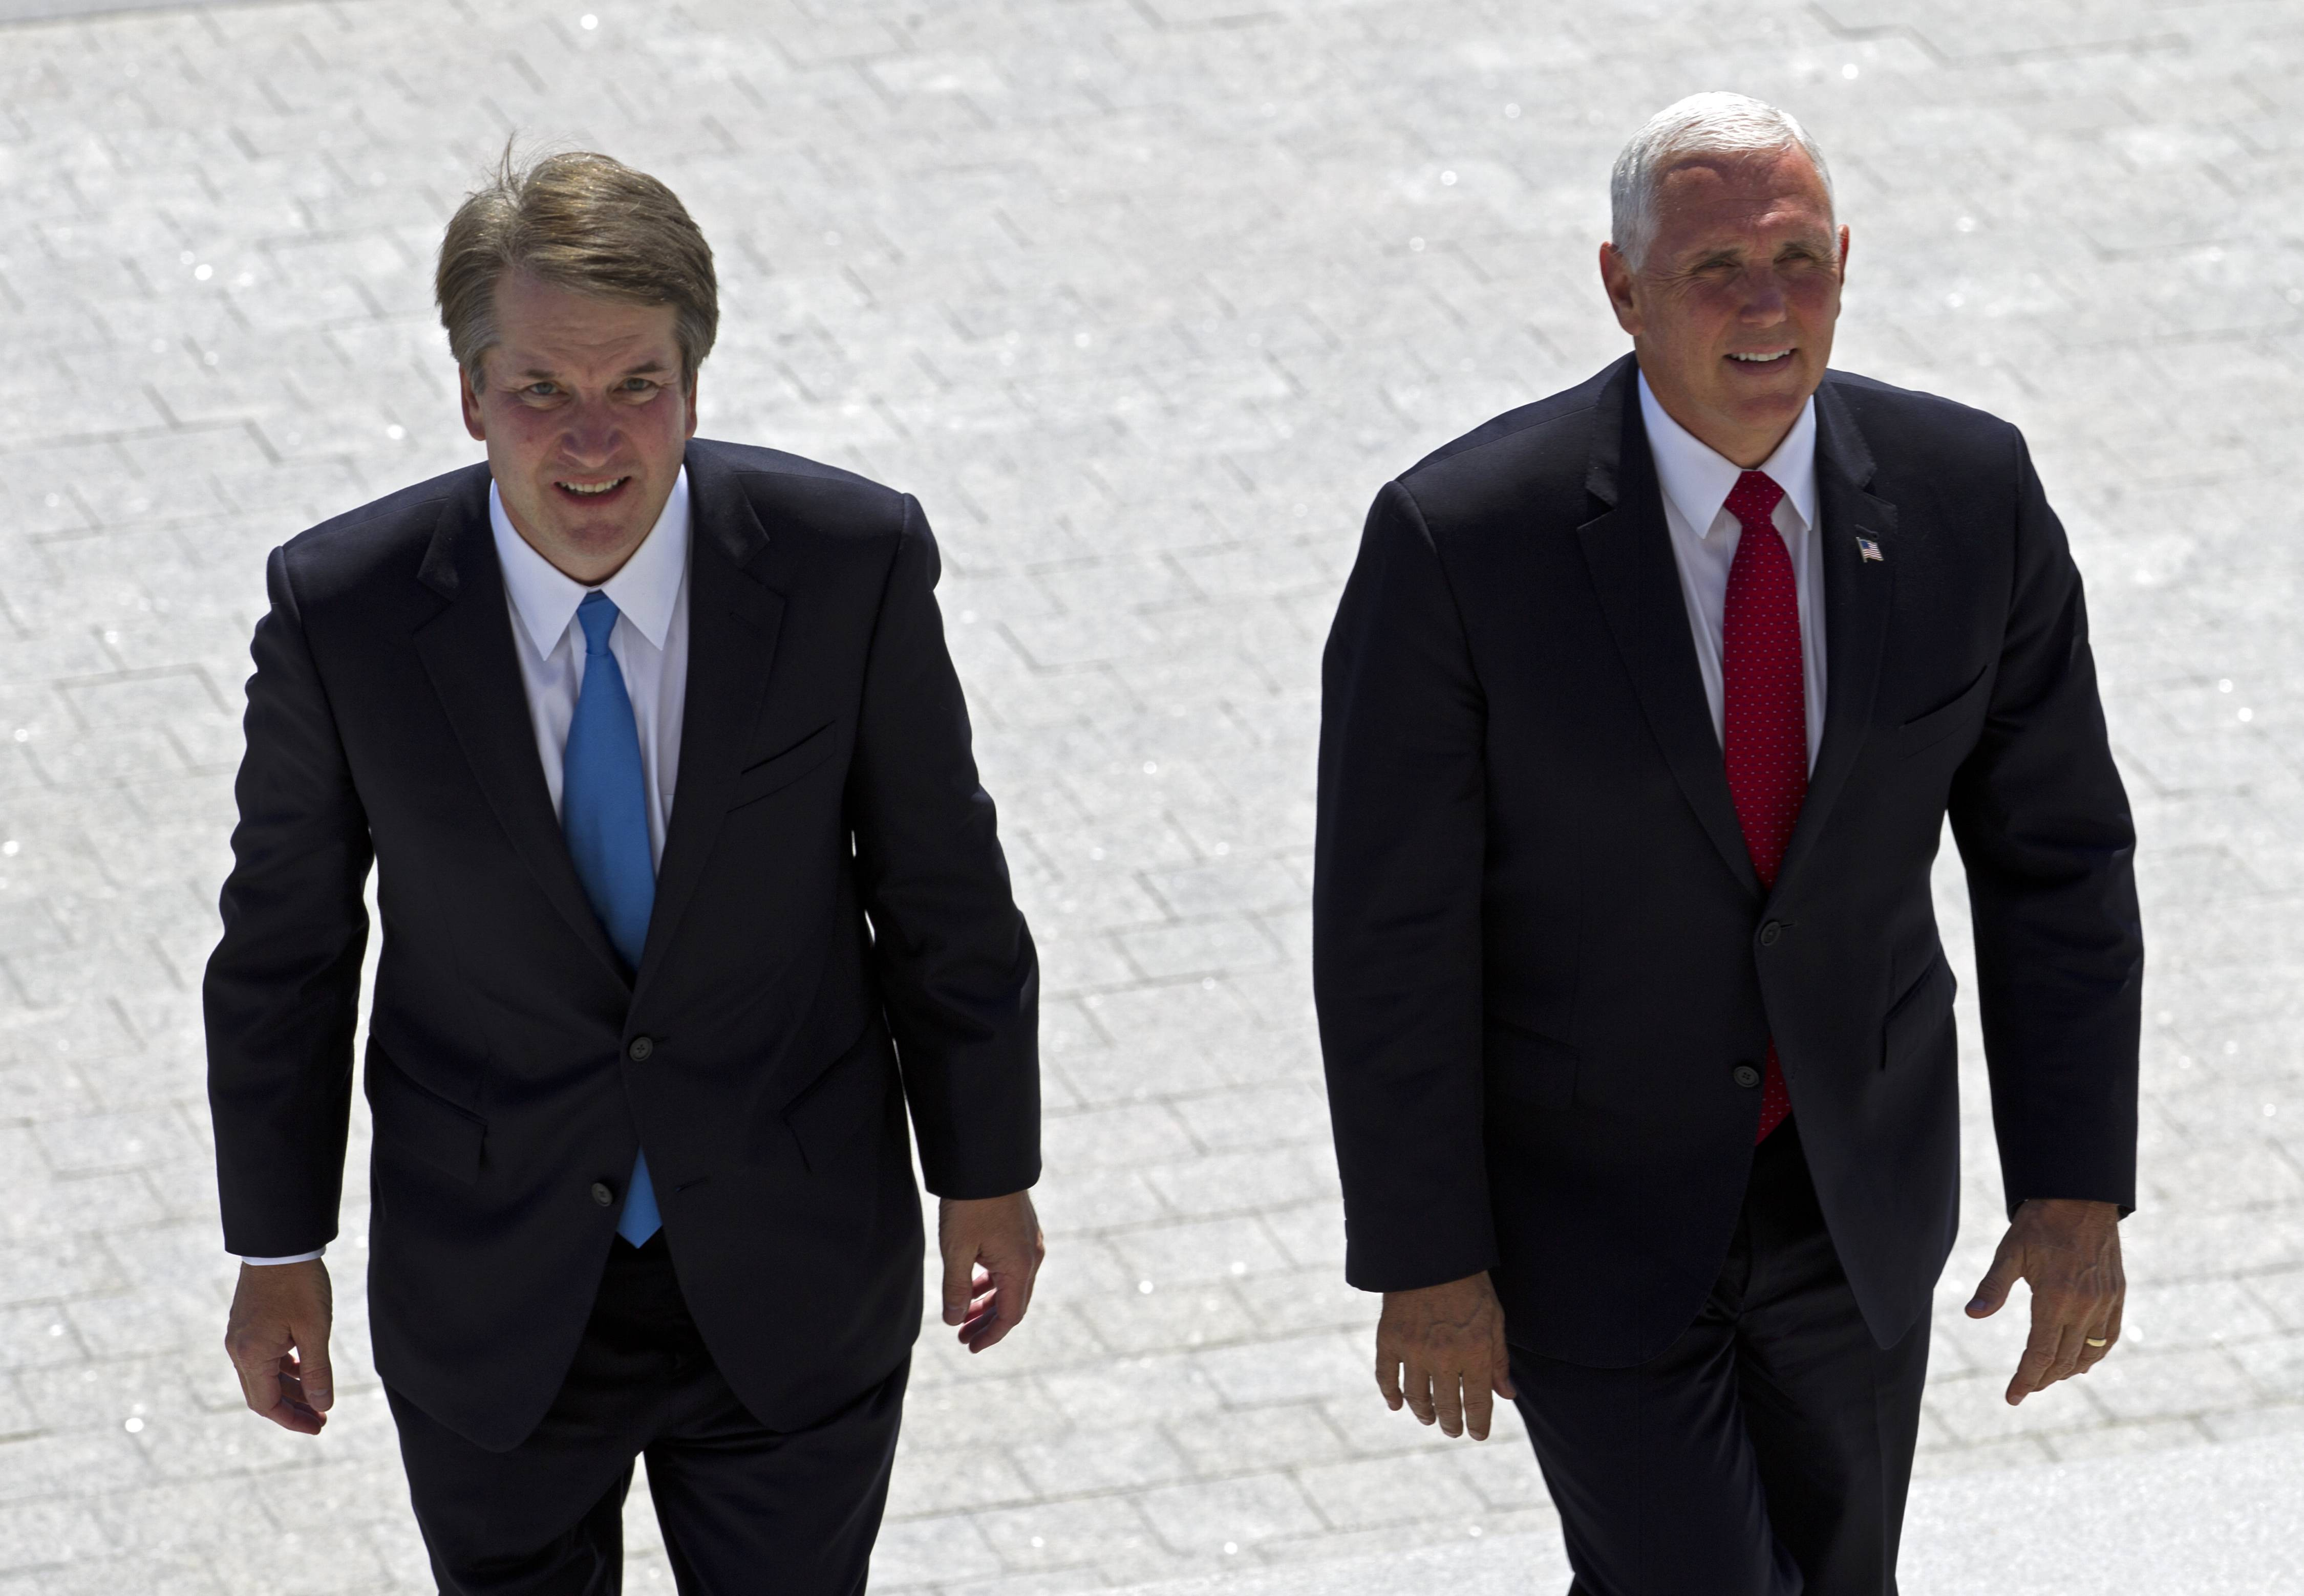 Vice President Mike Pence, right, accompanied by Supreme Court nominee Judge Brett Kavanaugh, arrive at the U.S. Capitol in Washington on Tuesday, July 10, 2018.